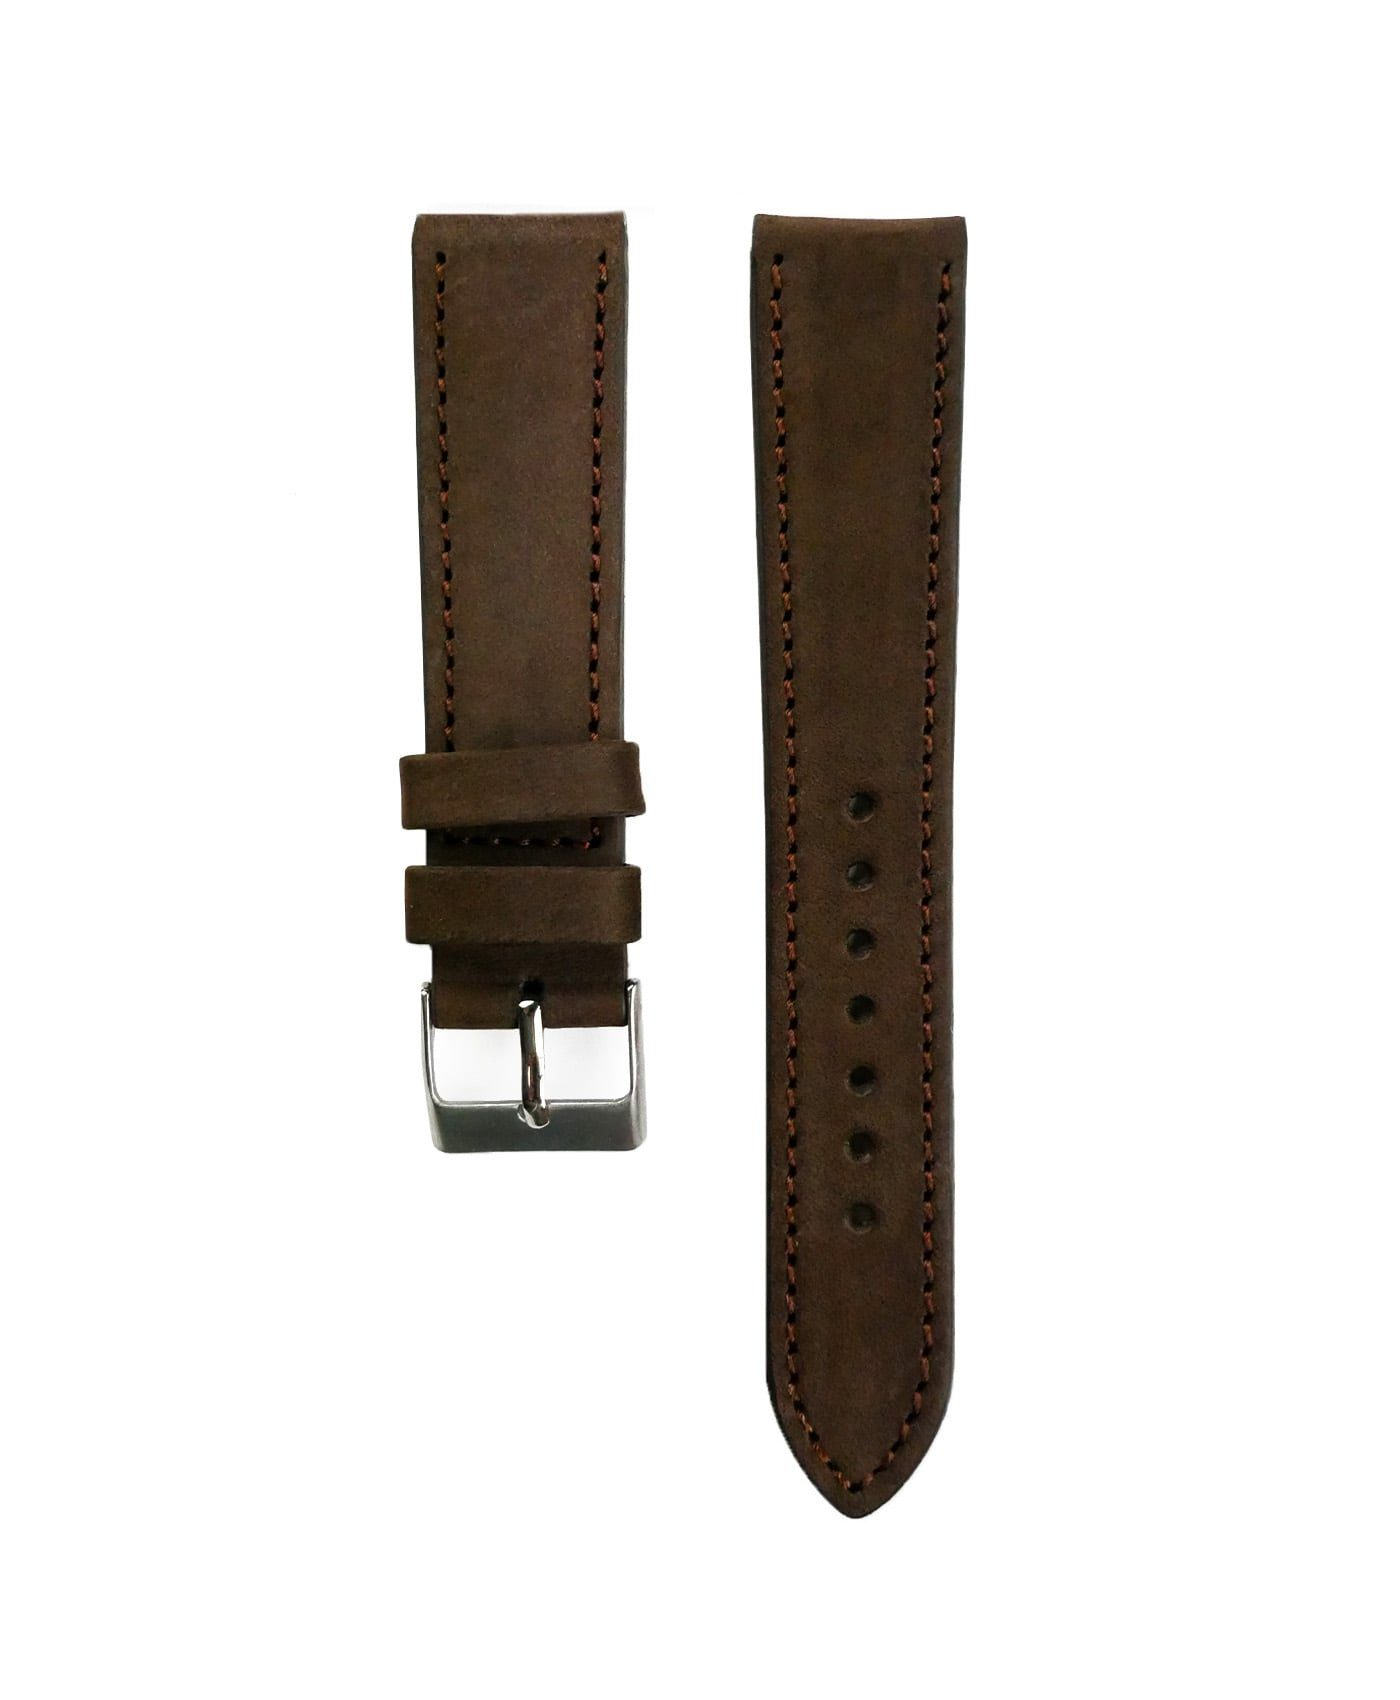 Pebro Premium Calfskin Watch Strap Hazelnut/Dark Brown No 191